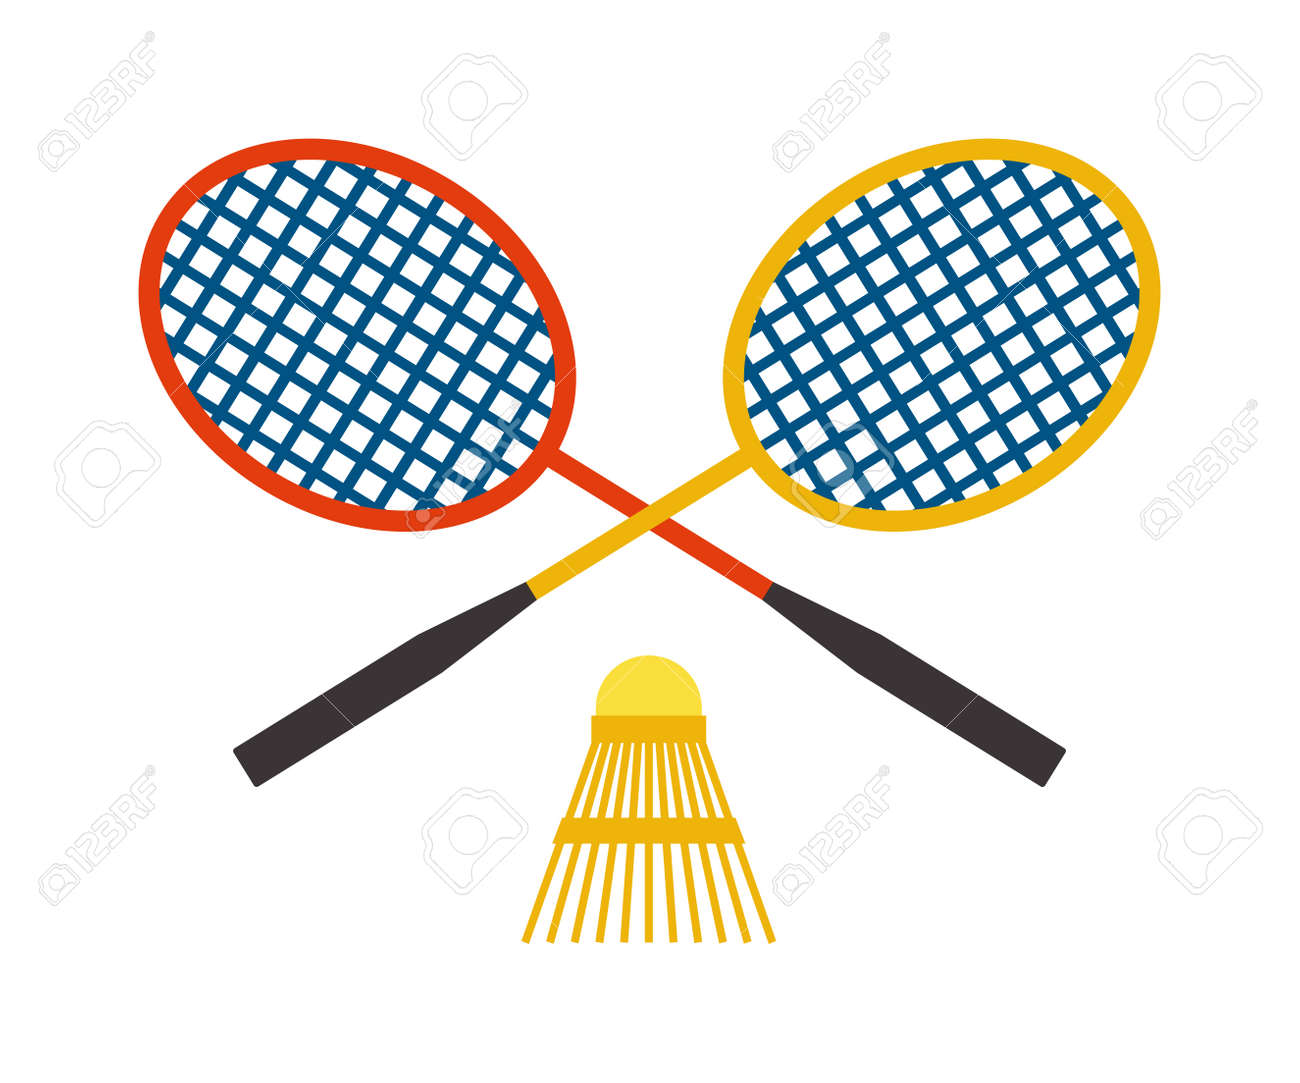 two badminton racket and shuttlecock sport game leisure competition